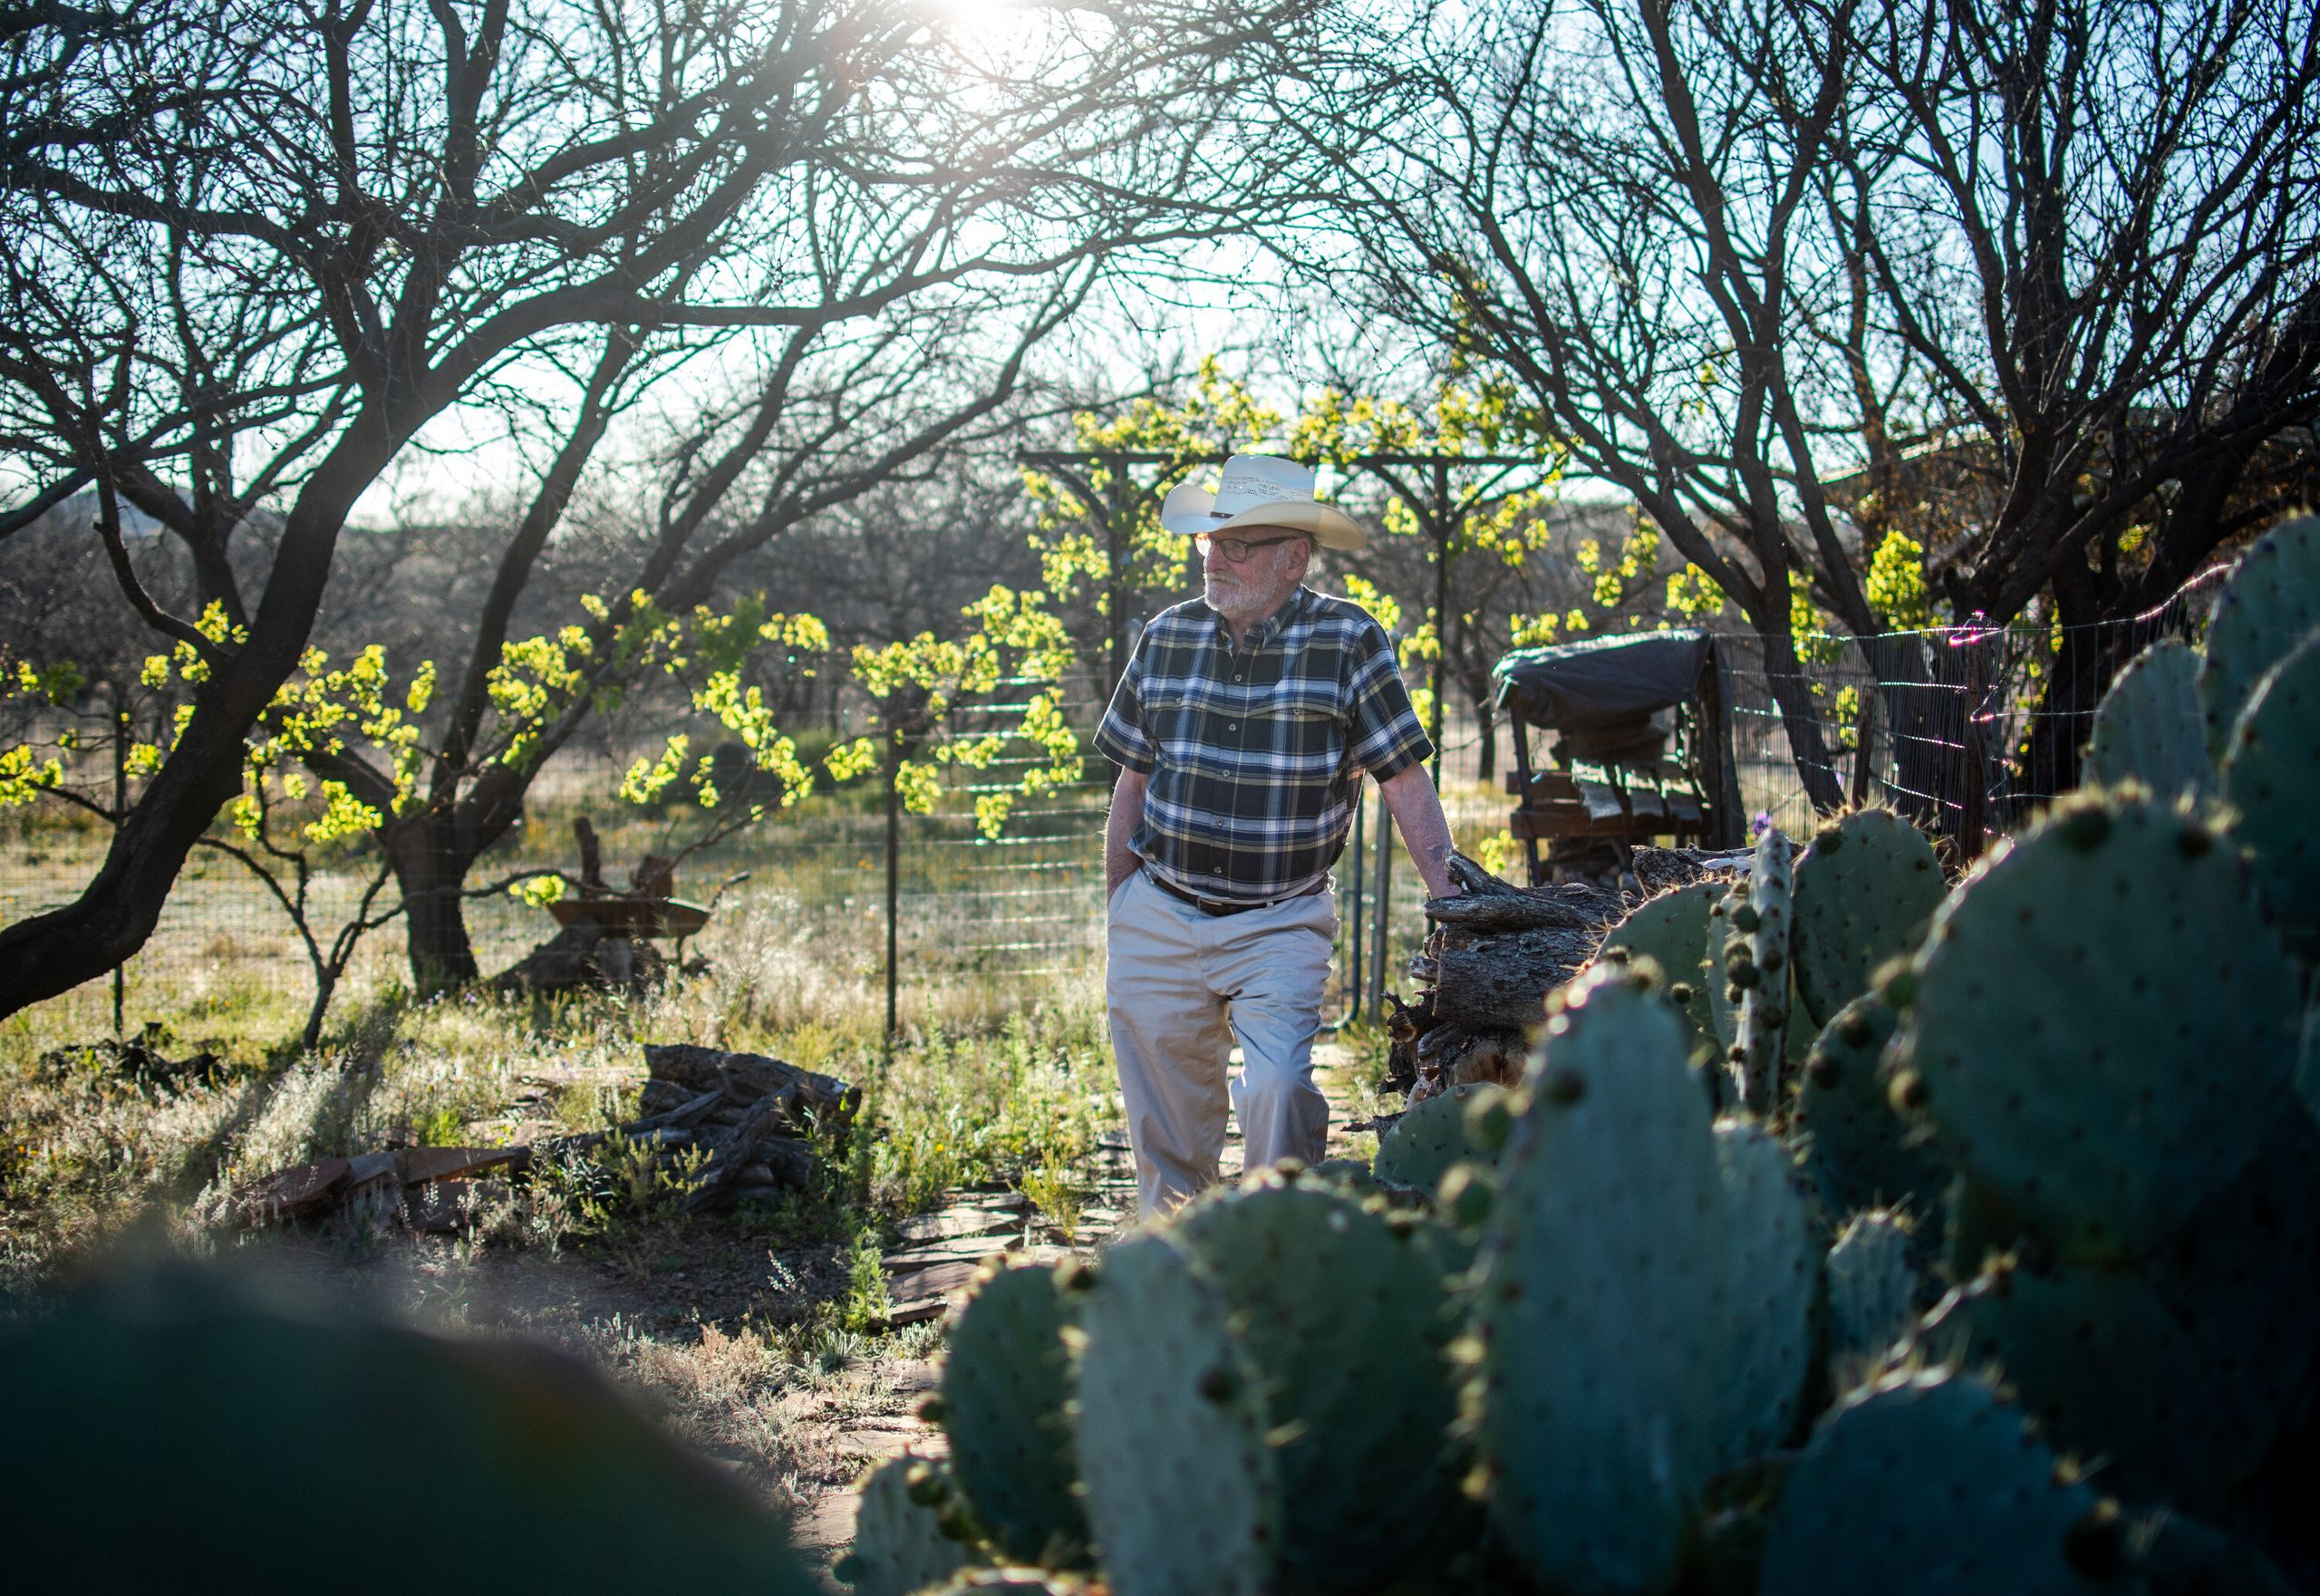 Dan Kelly, a 74-year-old retiree with chronic obstructive pulmonary disease, stands at his Arivaca home on April 15. Kelly ha